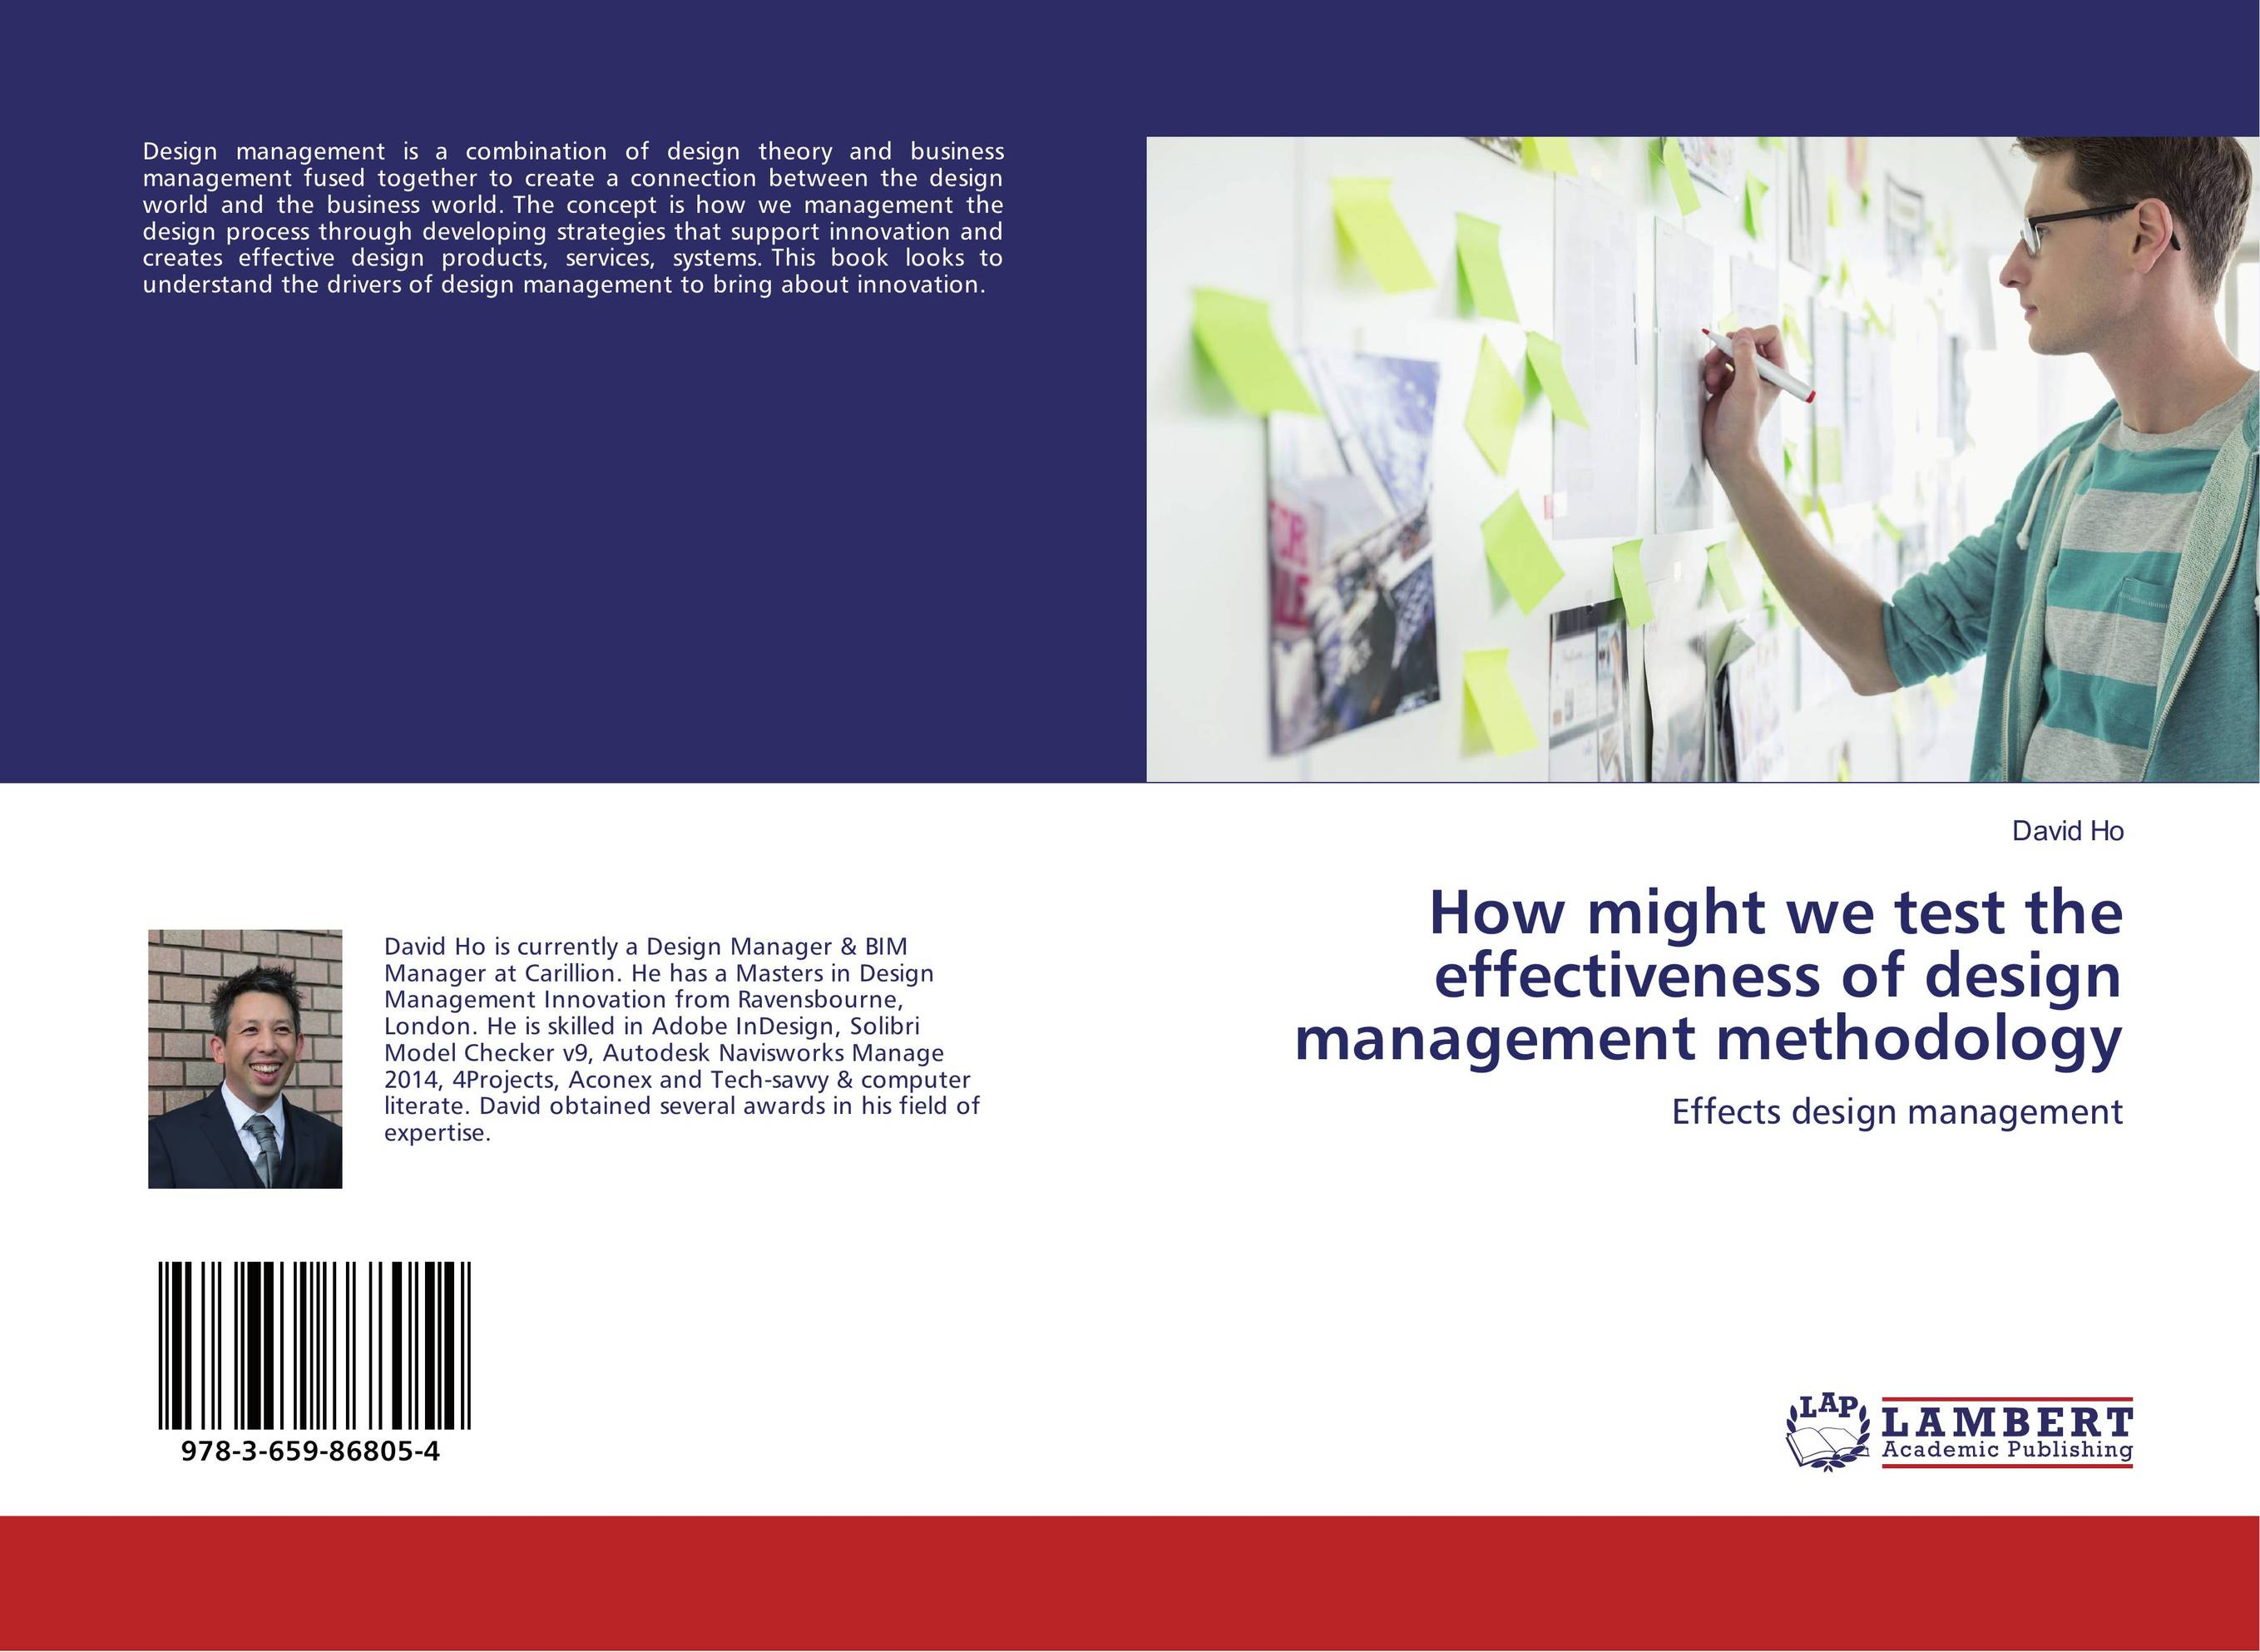 How might we test the effectiveness of design management methodology how might we test the effectiveness of design management methodology